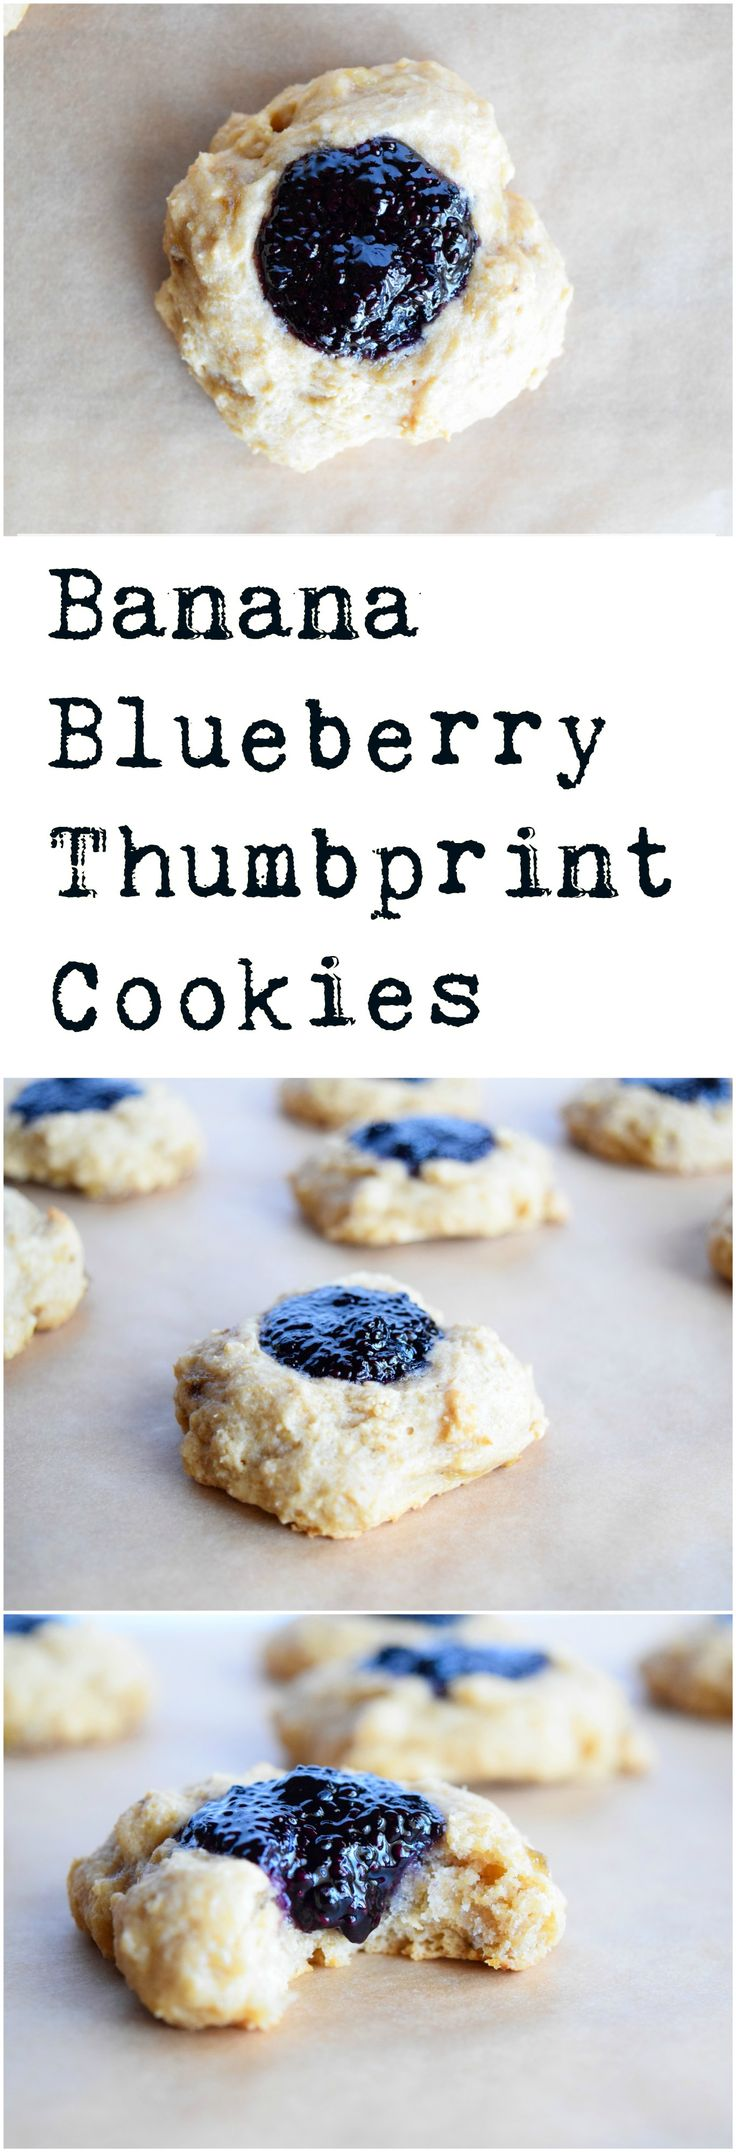 Soft banana cookies are filled with deliciously sweet blueberry jam. Easy, vegan, dairy free, and refined sugar free.